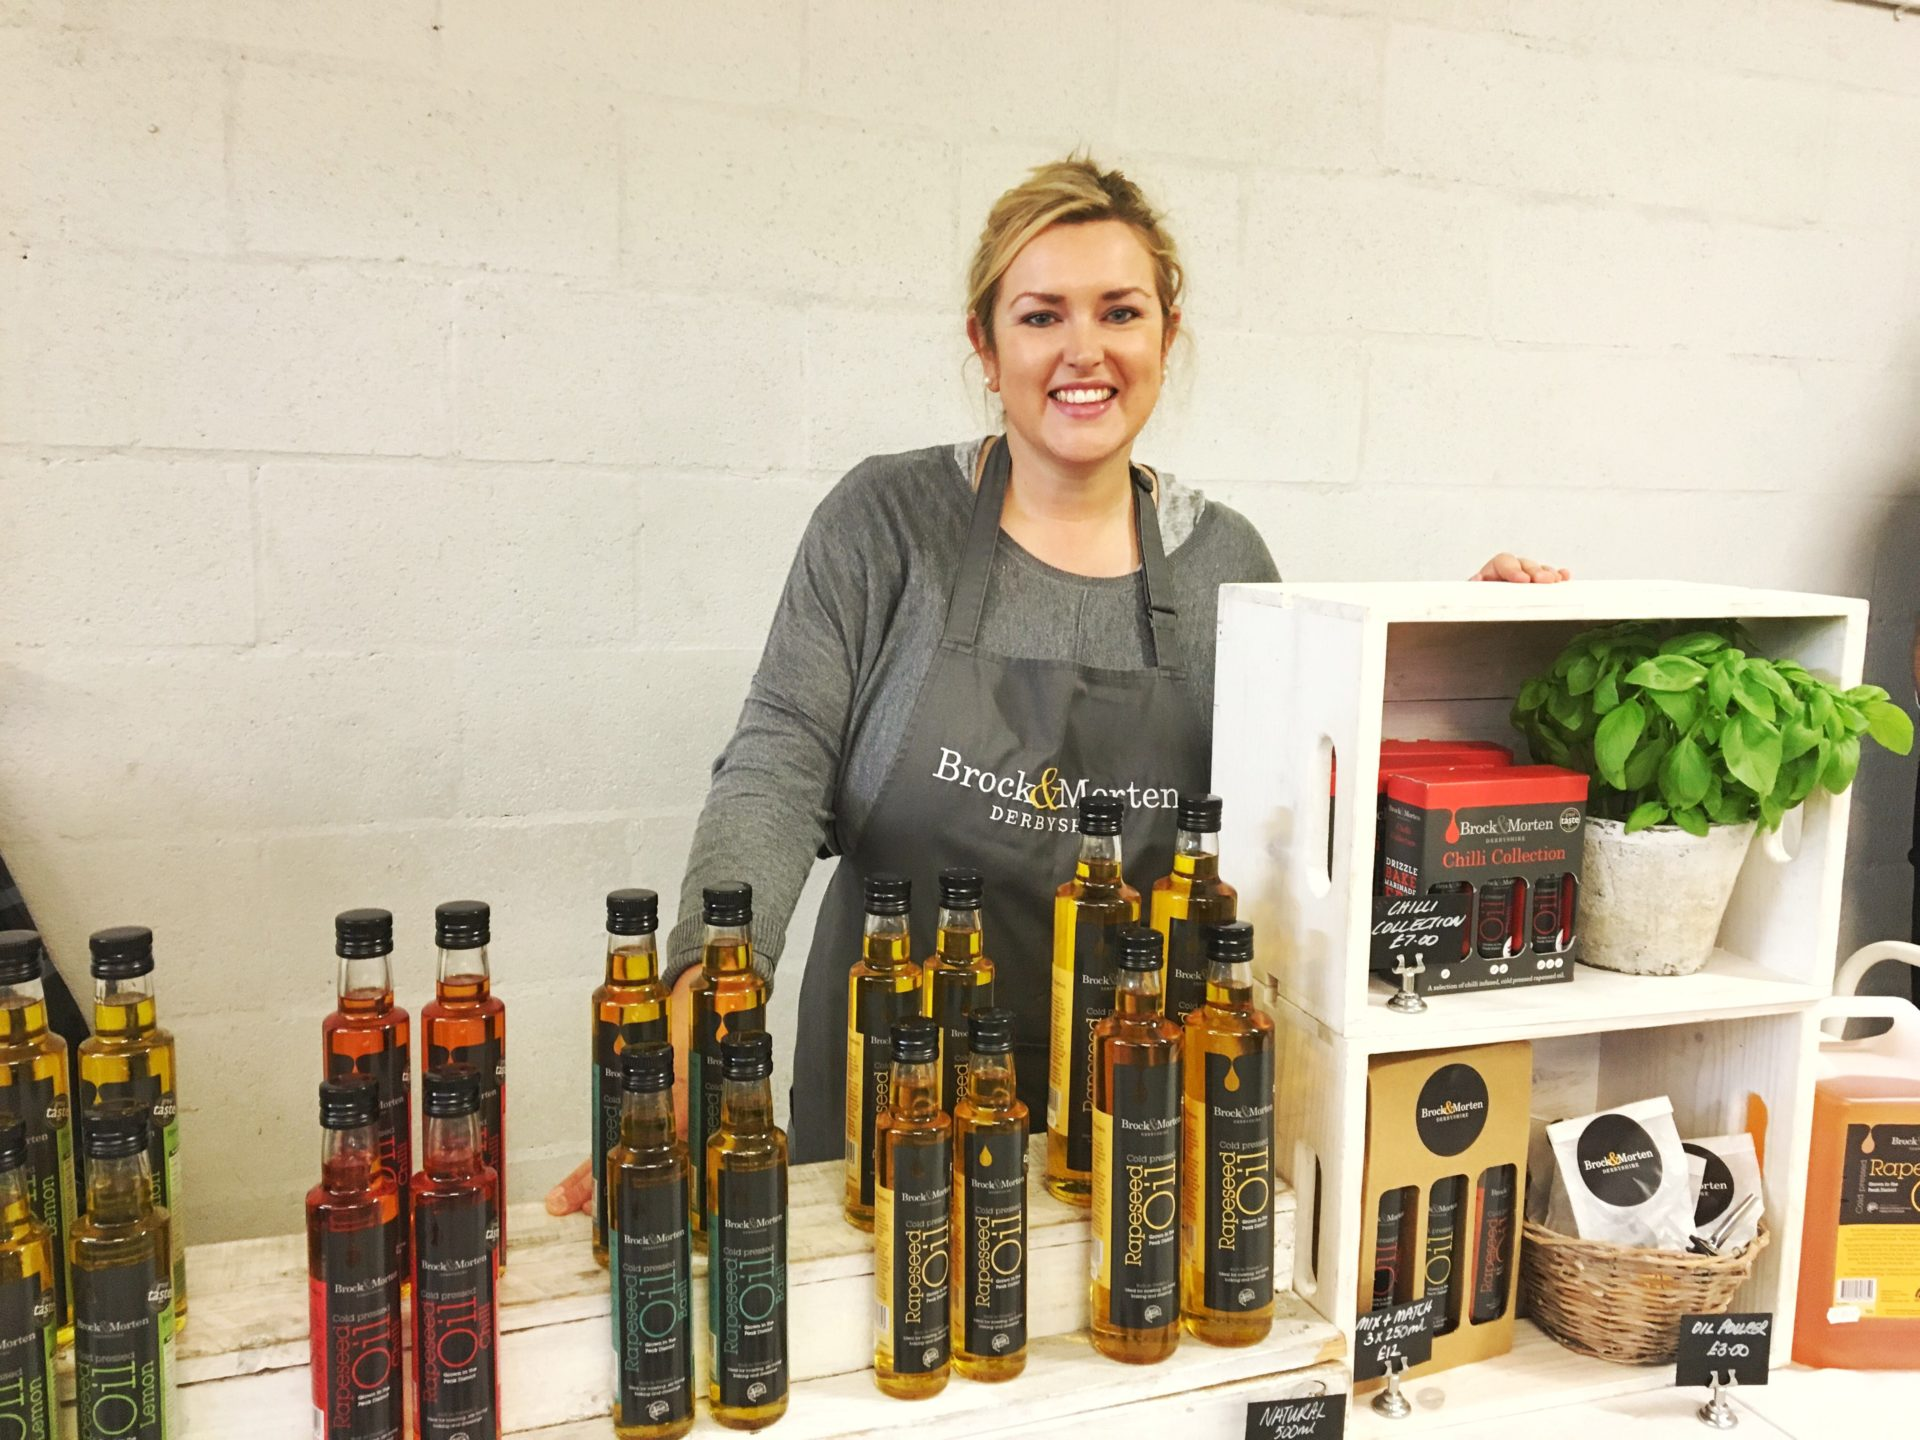 A smiling Kate, co-owner of Brock & Morten, at the Bakewell Farmer's Market August 2016 with her stall of colourful rapeseed oils